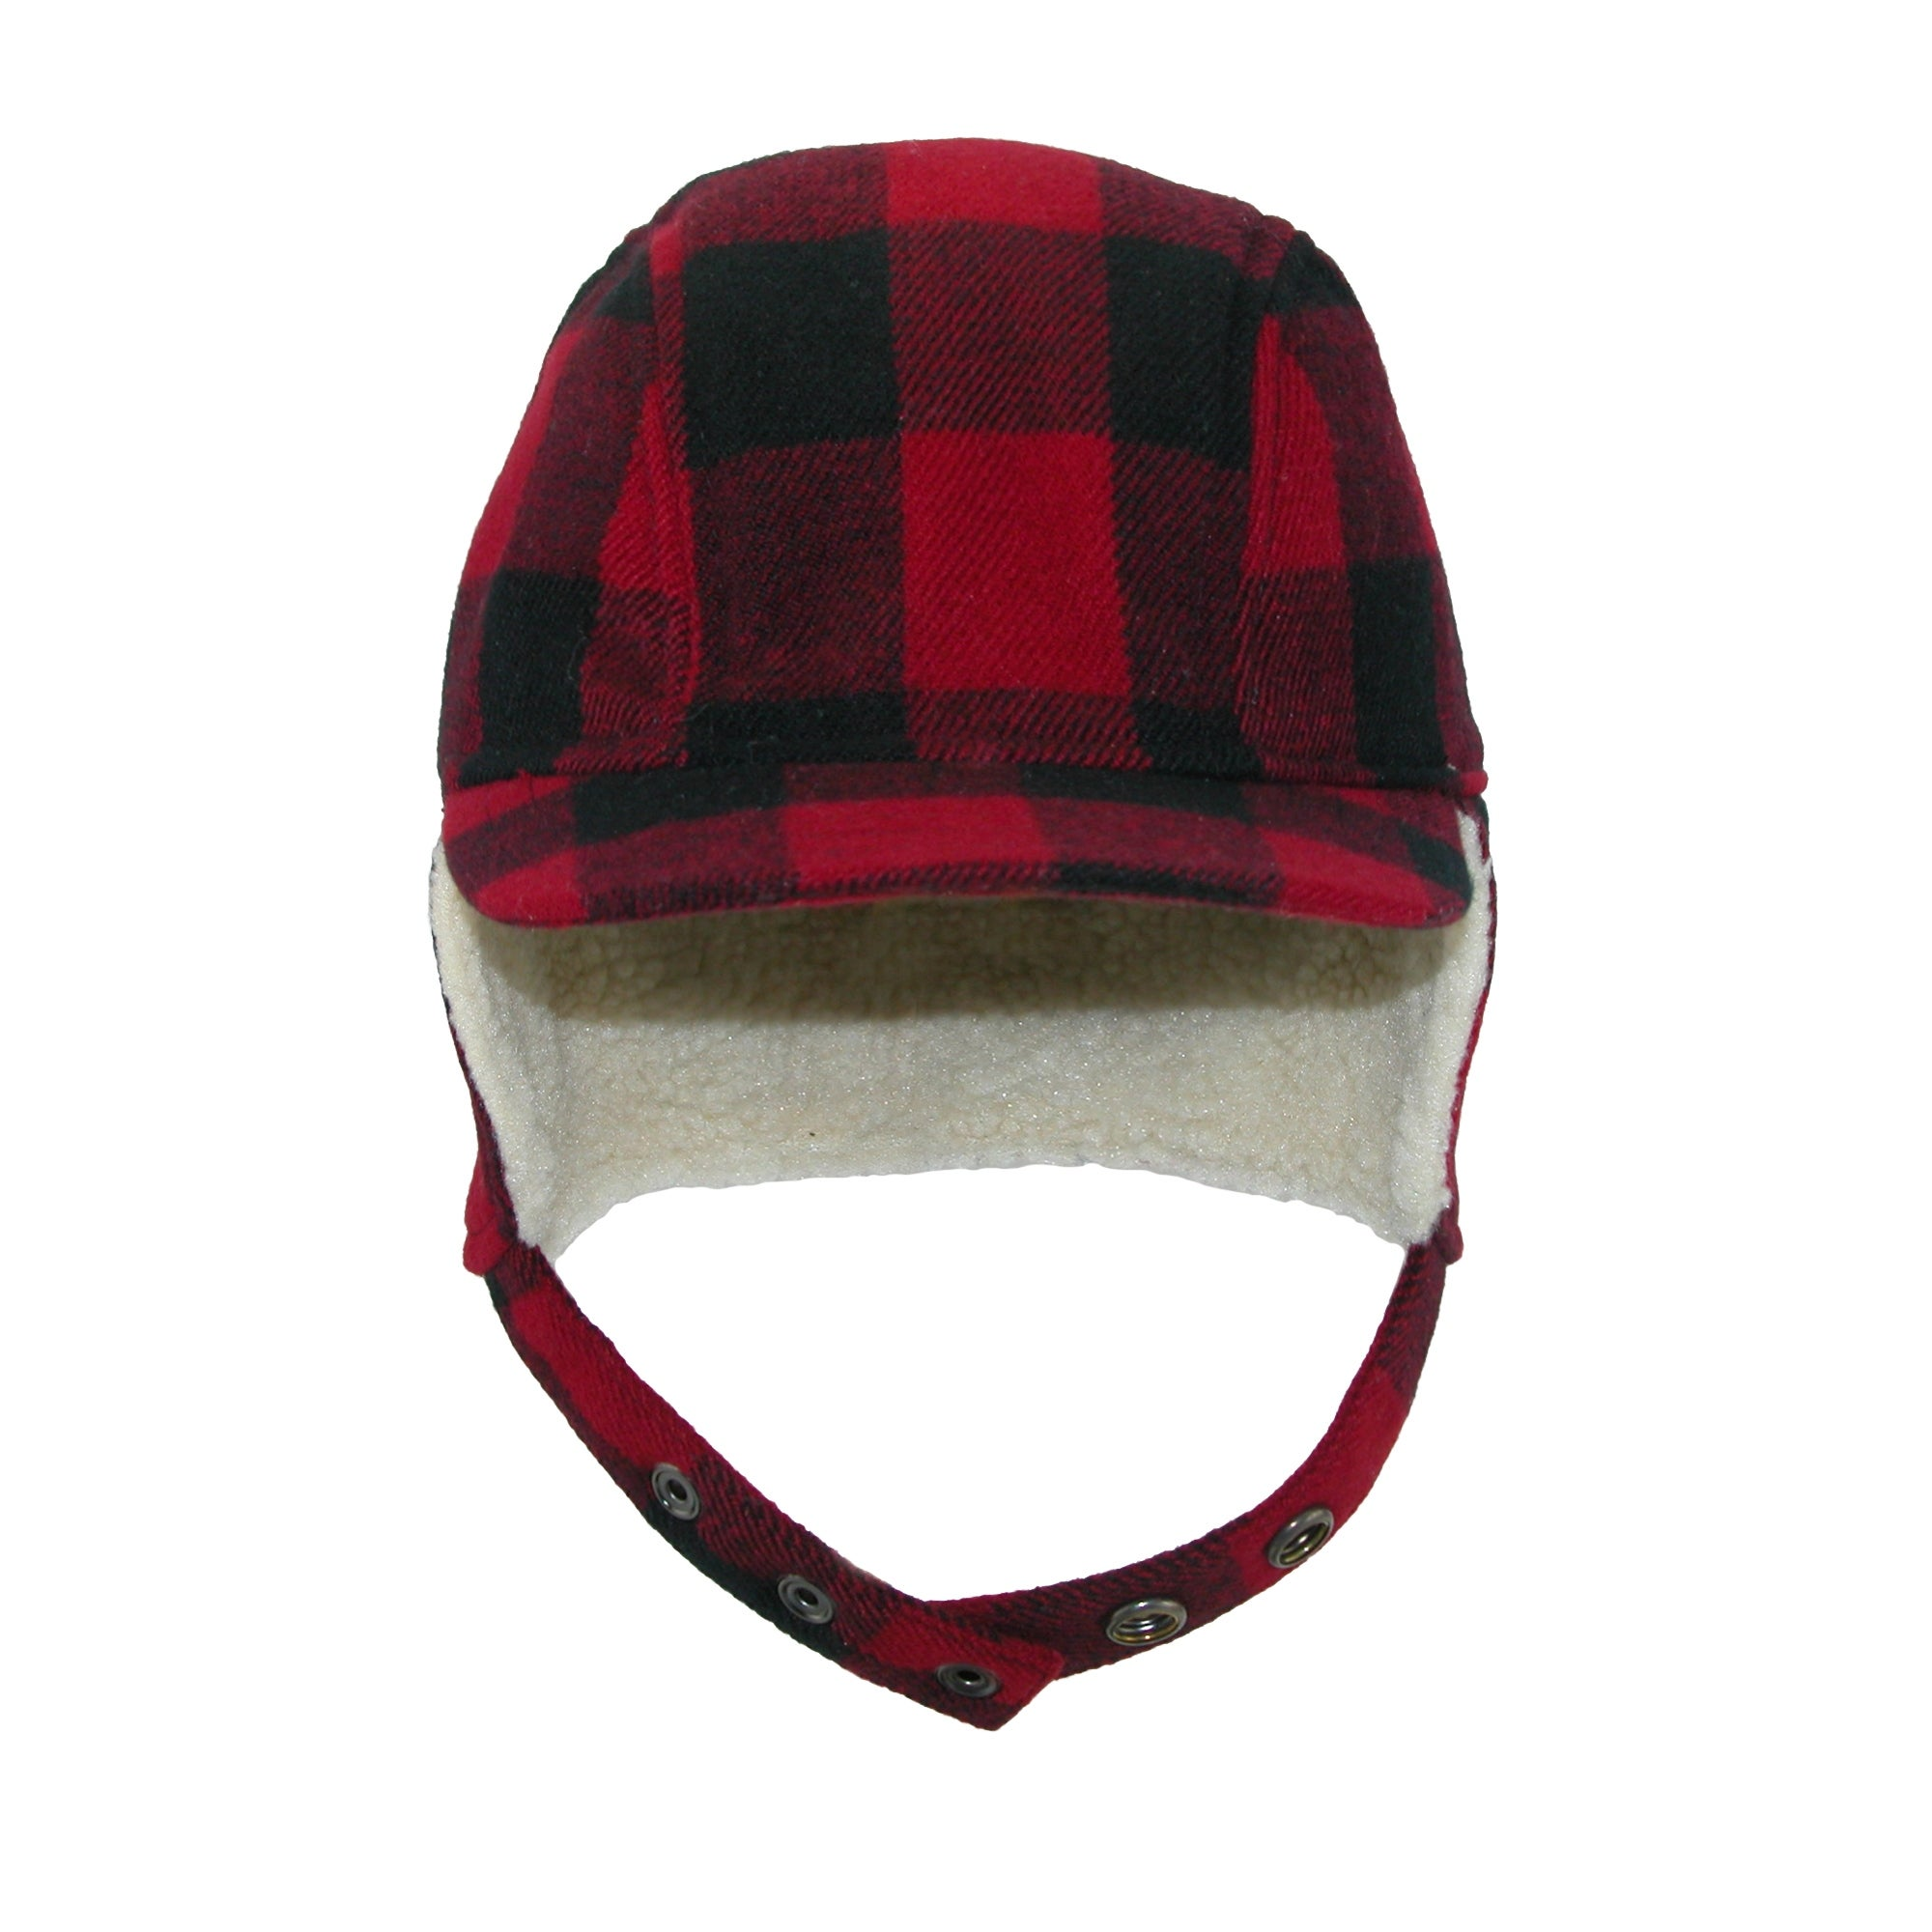 Shop Broner Men s Wool Plaid Outdoor Cap with Sherpa Earflaps - Free  Shipping On Orders Over  45 - Overstock - 17654229 434a34c23c15